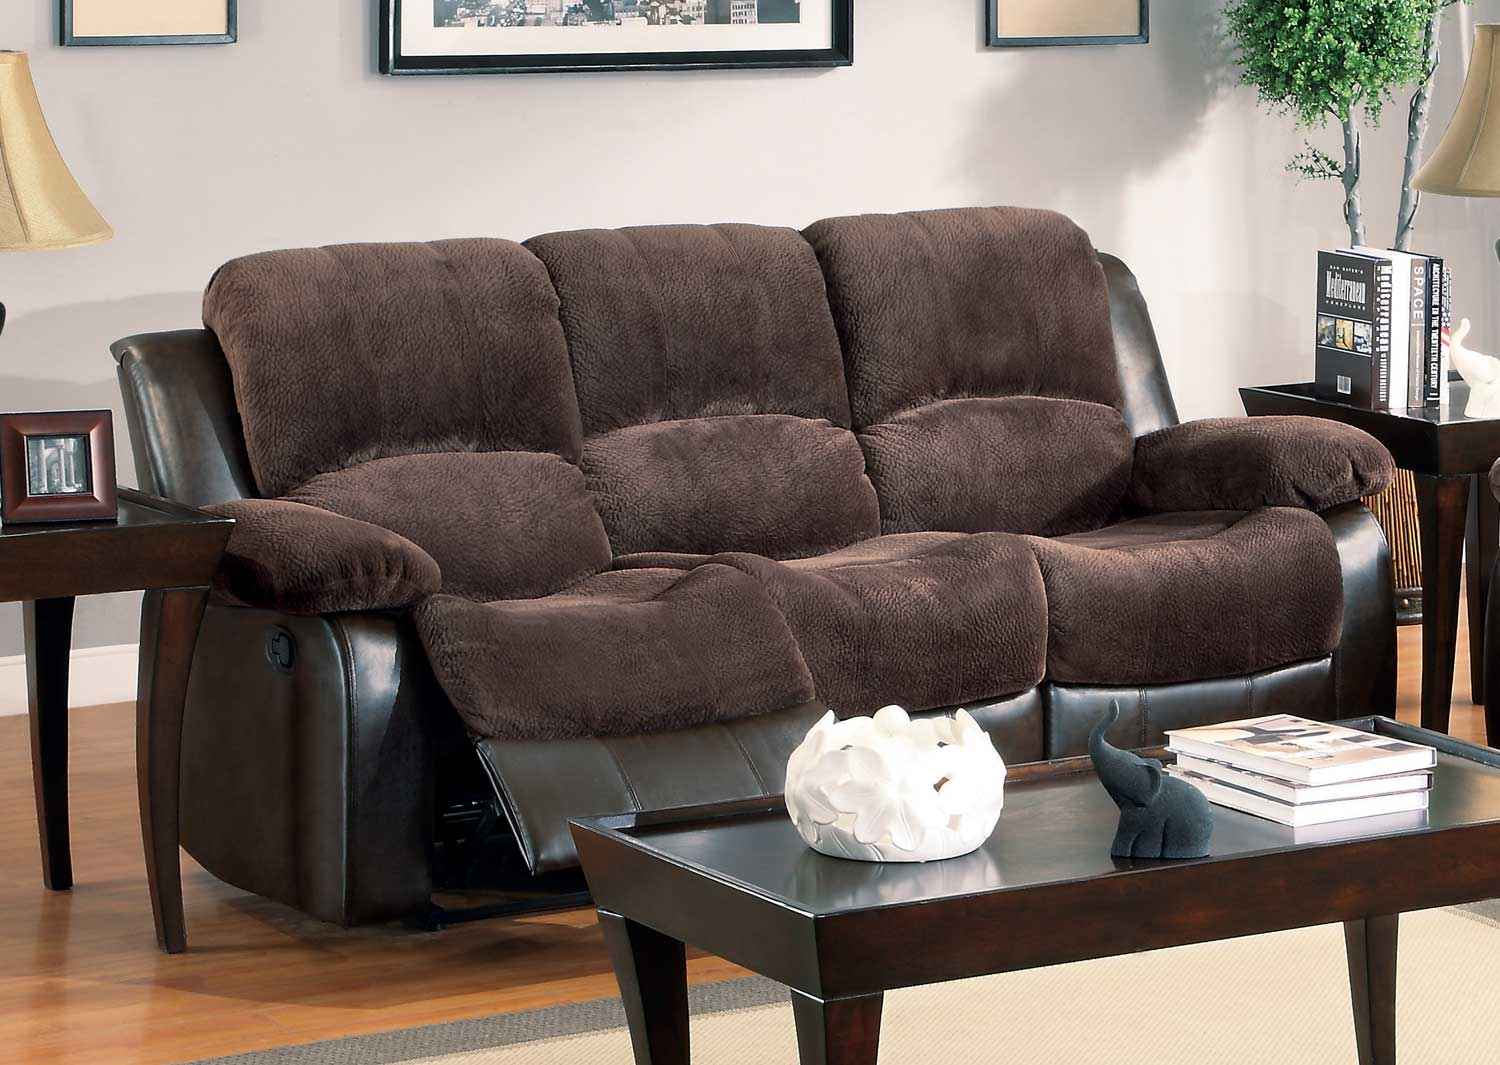 Homelegance Cranley Sofa Dual Recliner - Chocolate - Textured Plush Microfiber & Bi-Cast Vinyl